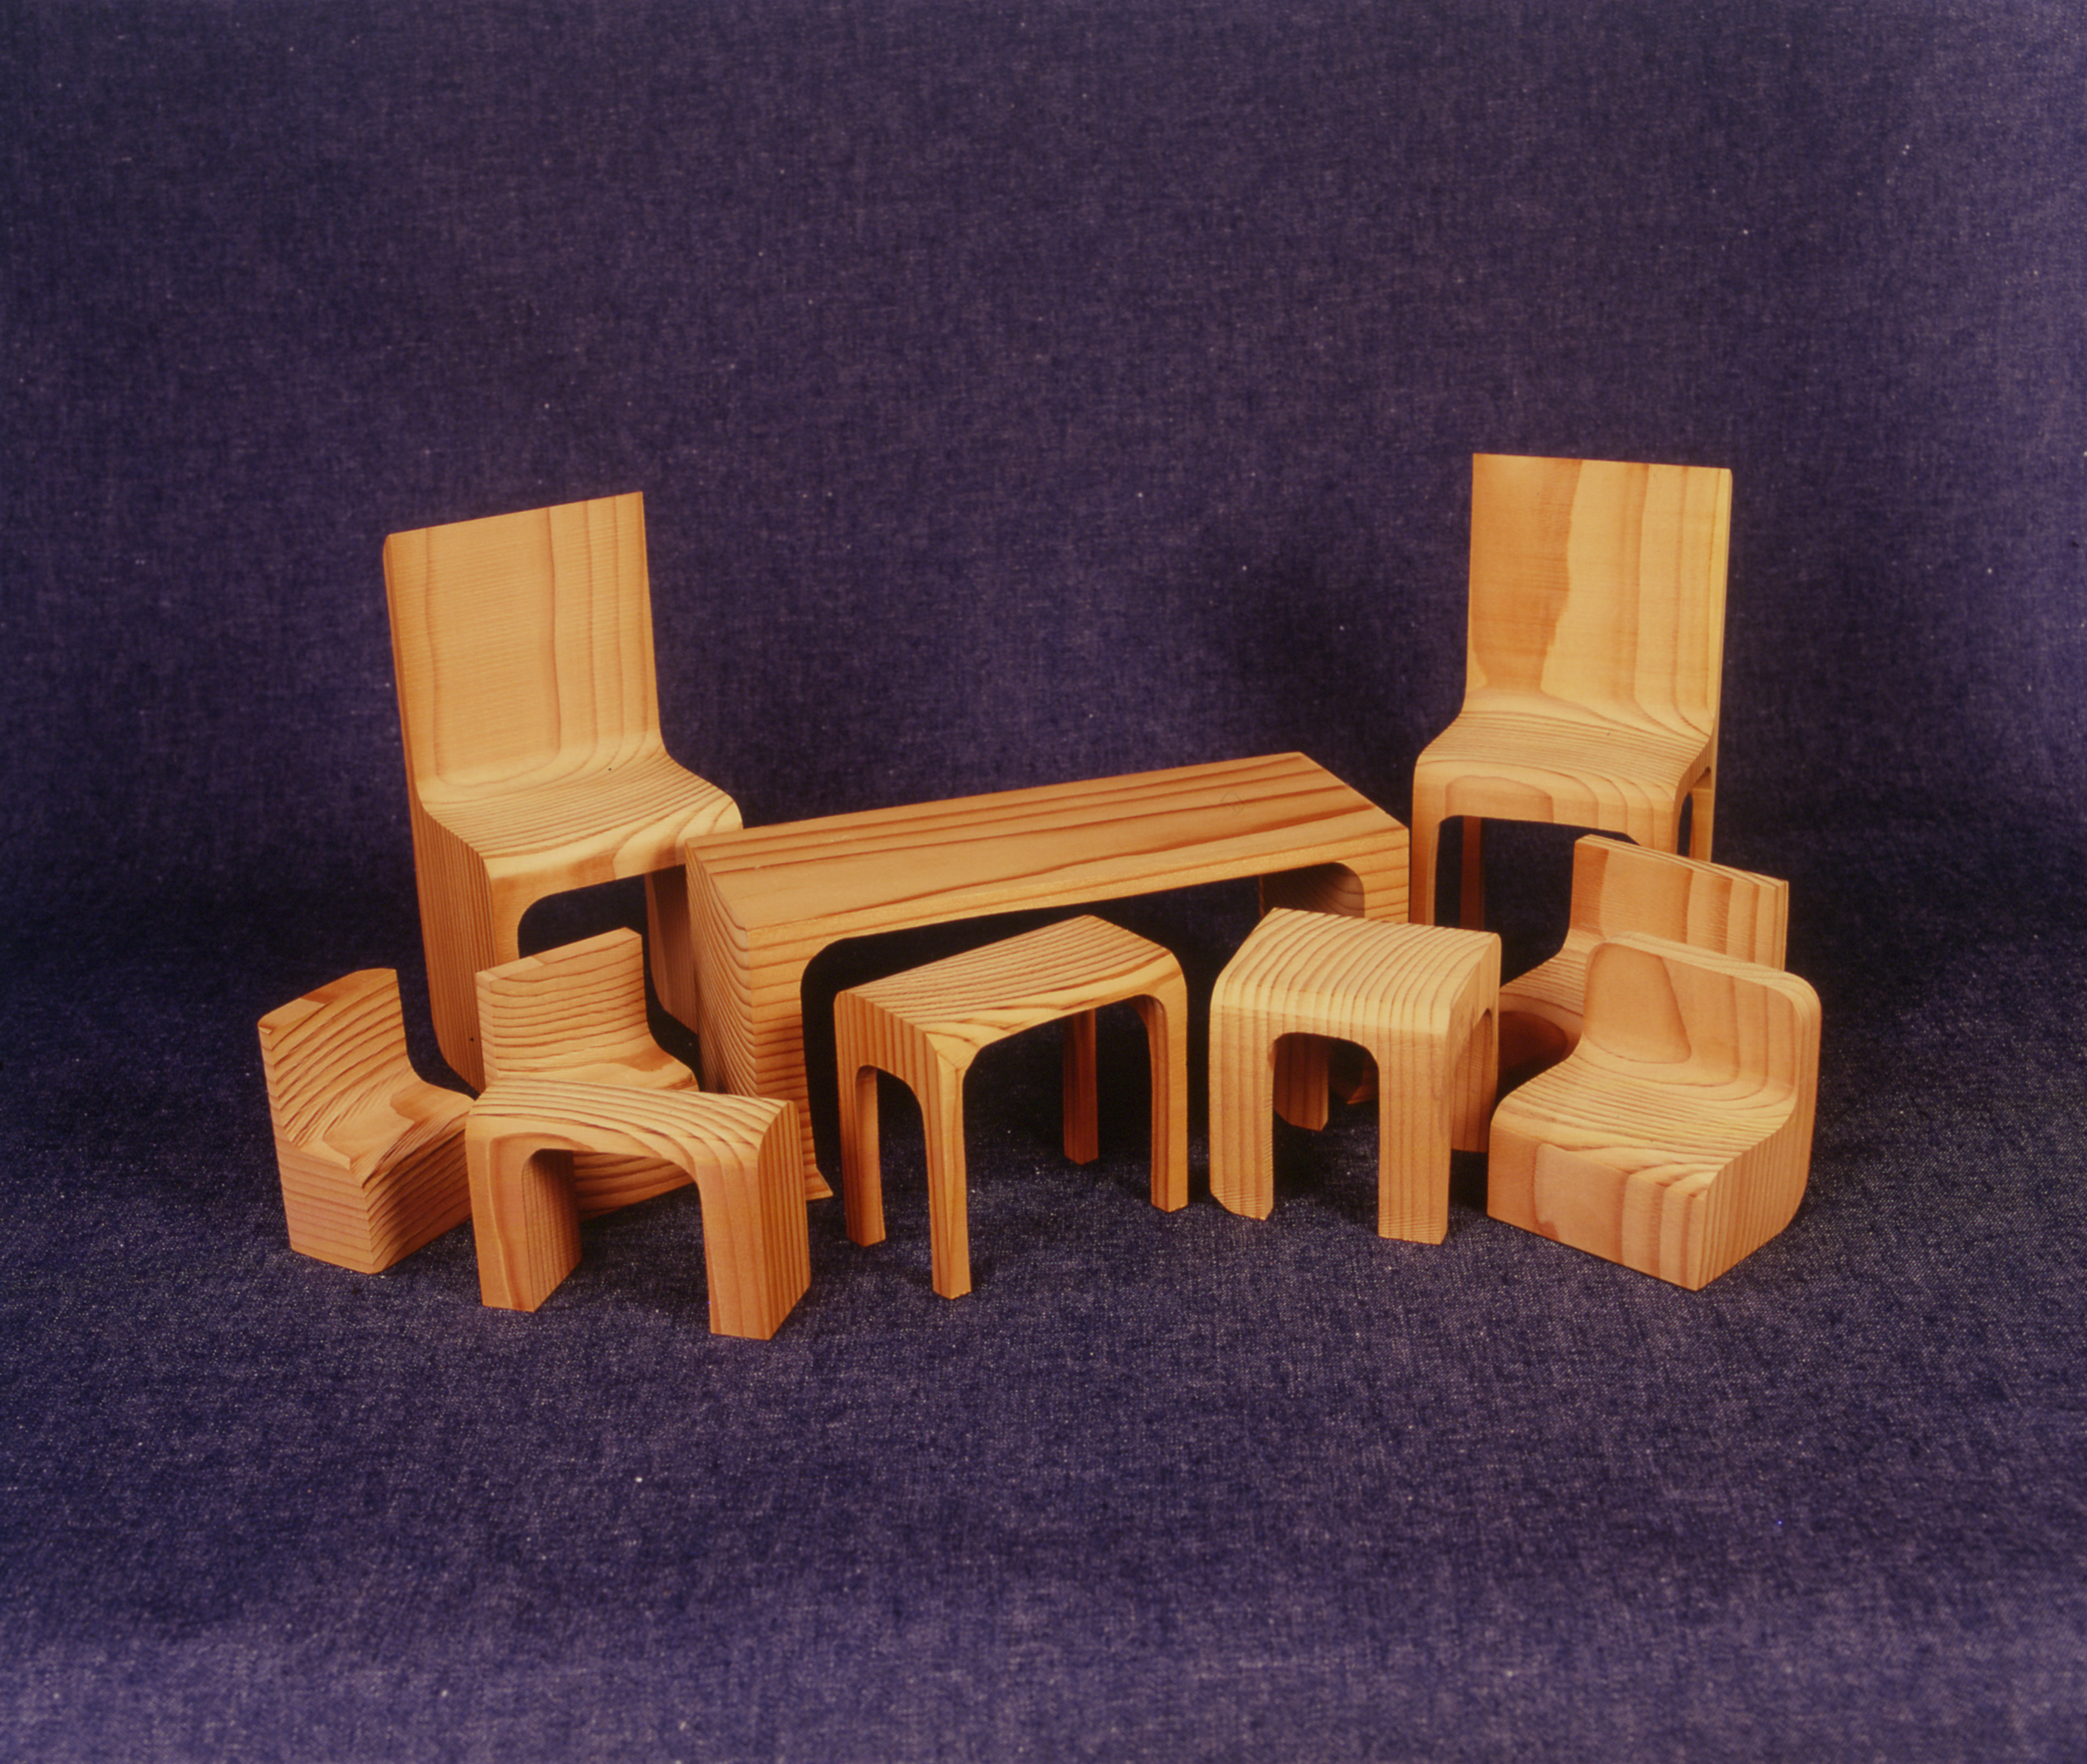 chair stool crossword tub chairs cheap puzzle  plans unlimited